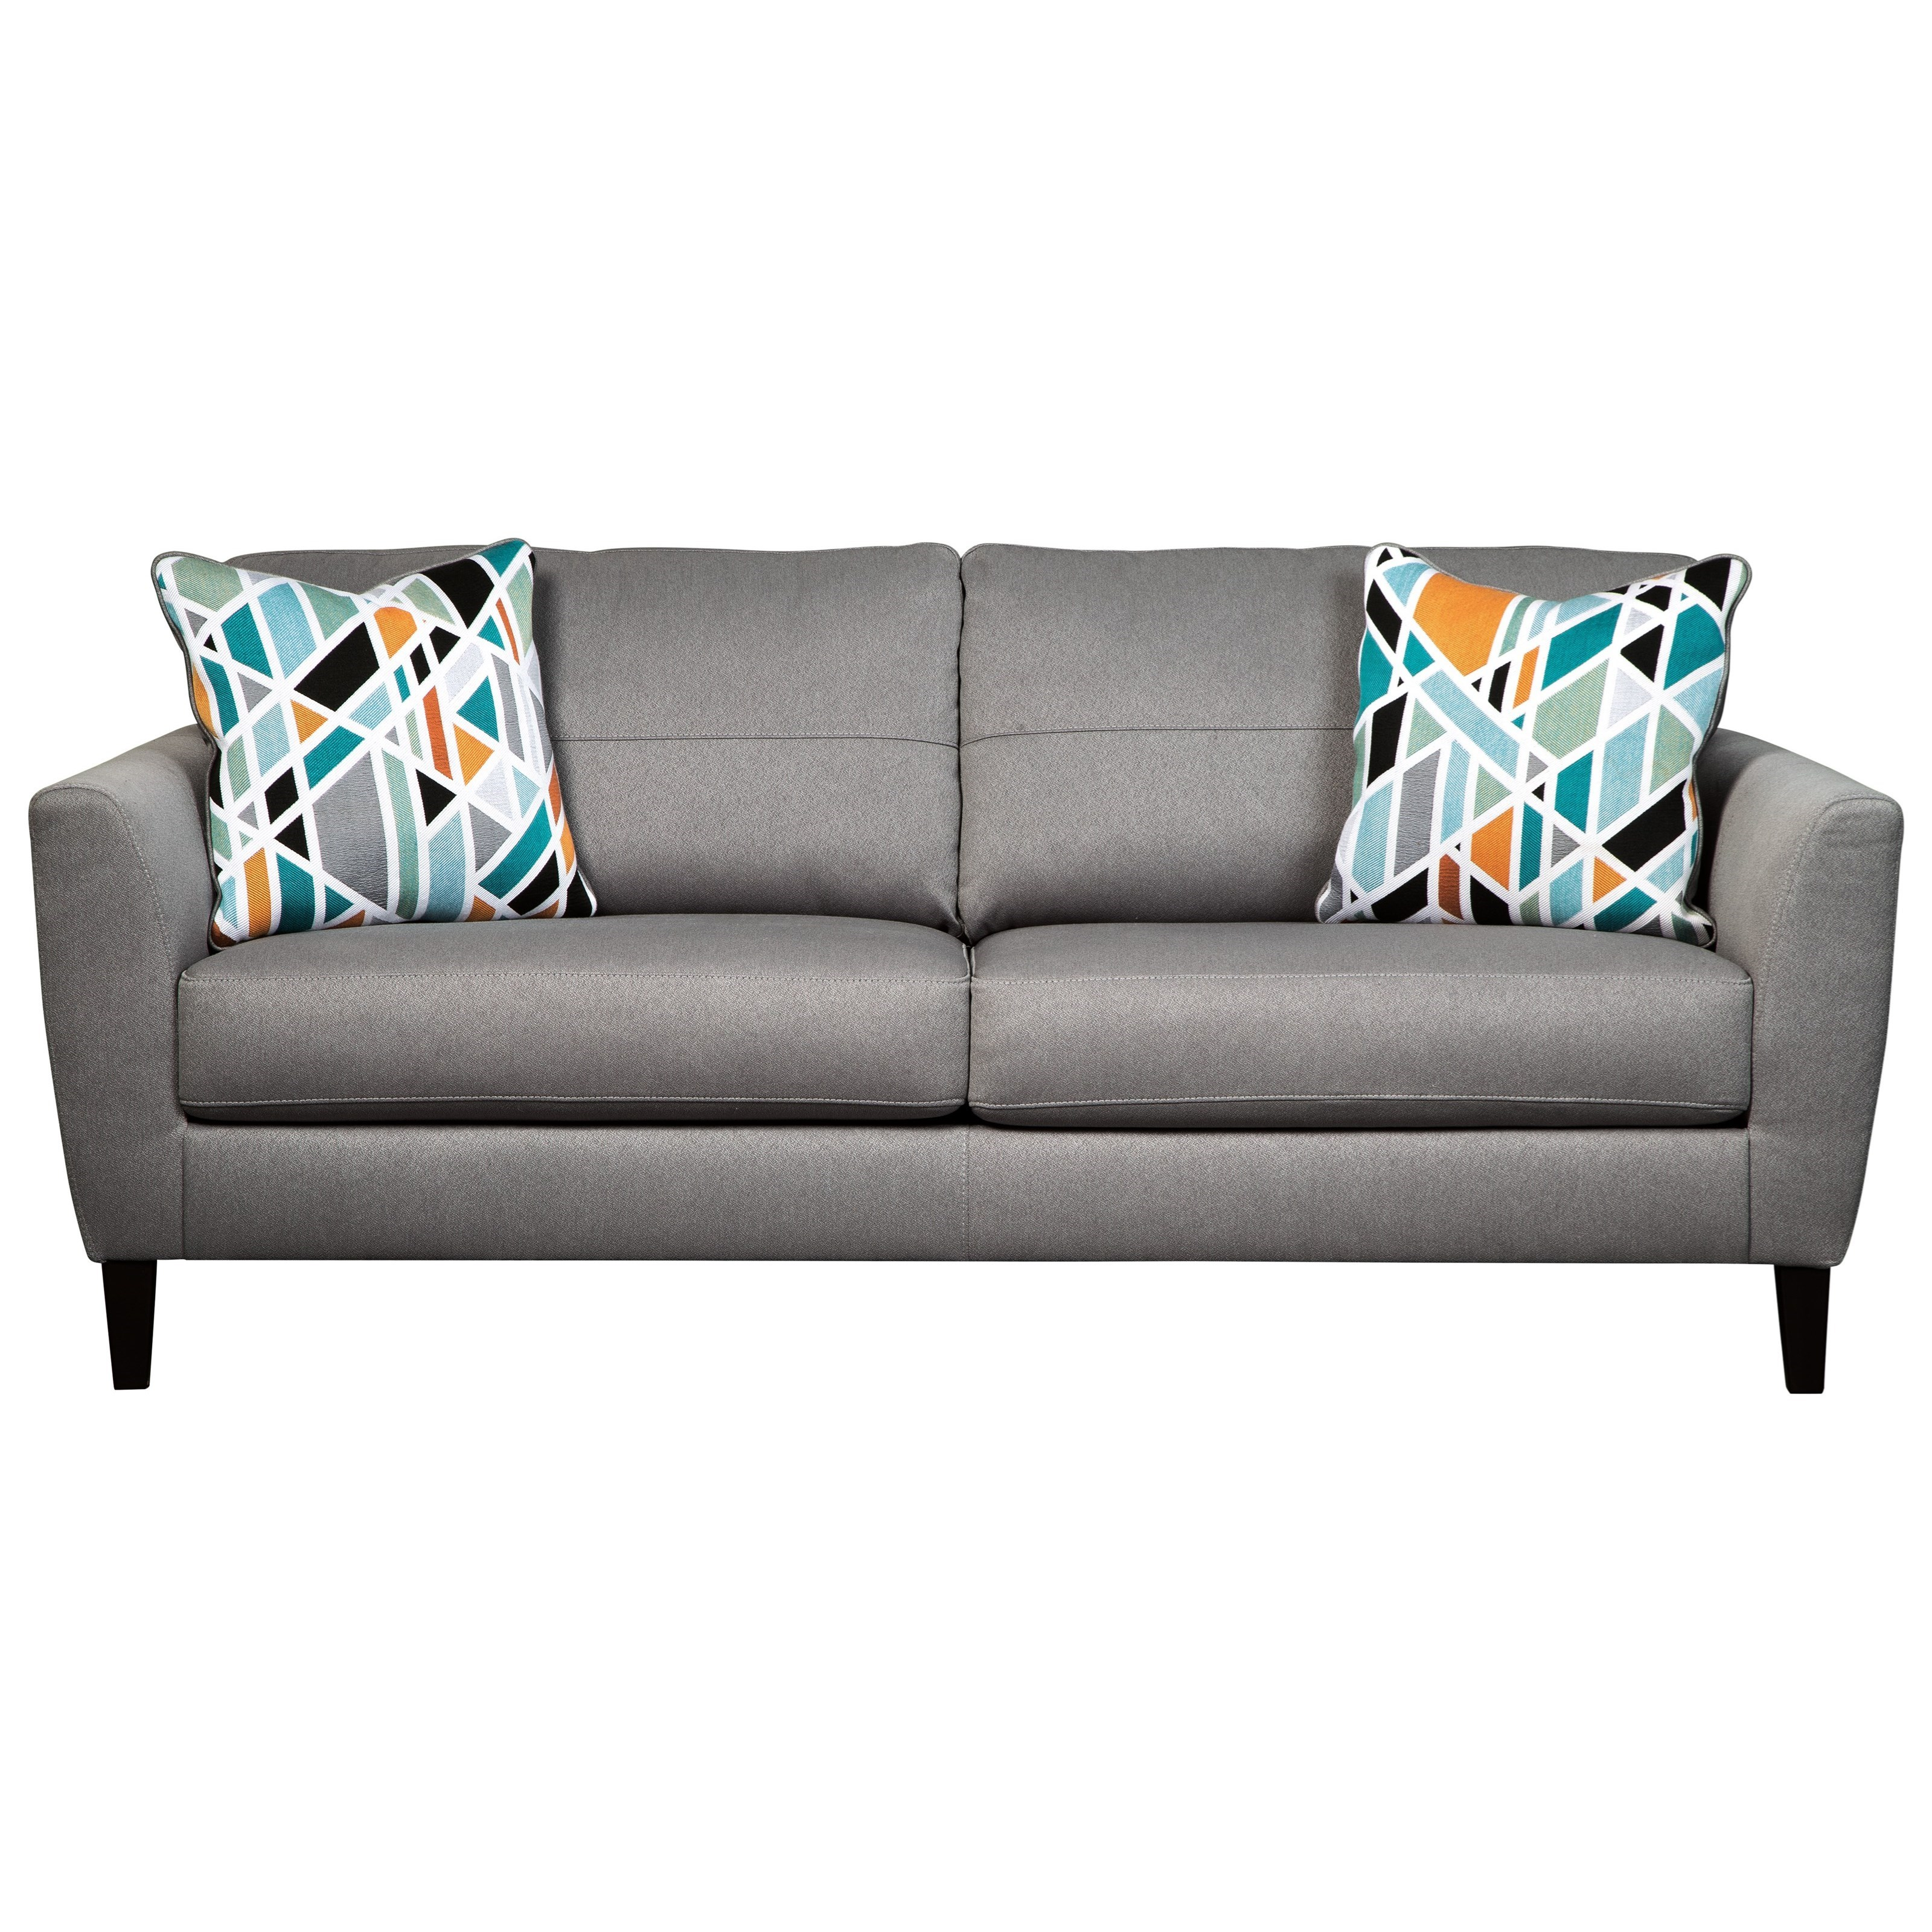 Benchcraft Pelsor Contemporary Sofa Miskelly Furniture Sofas